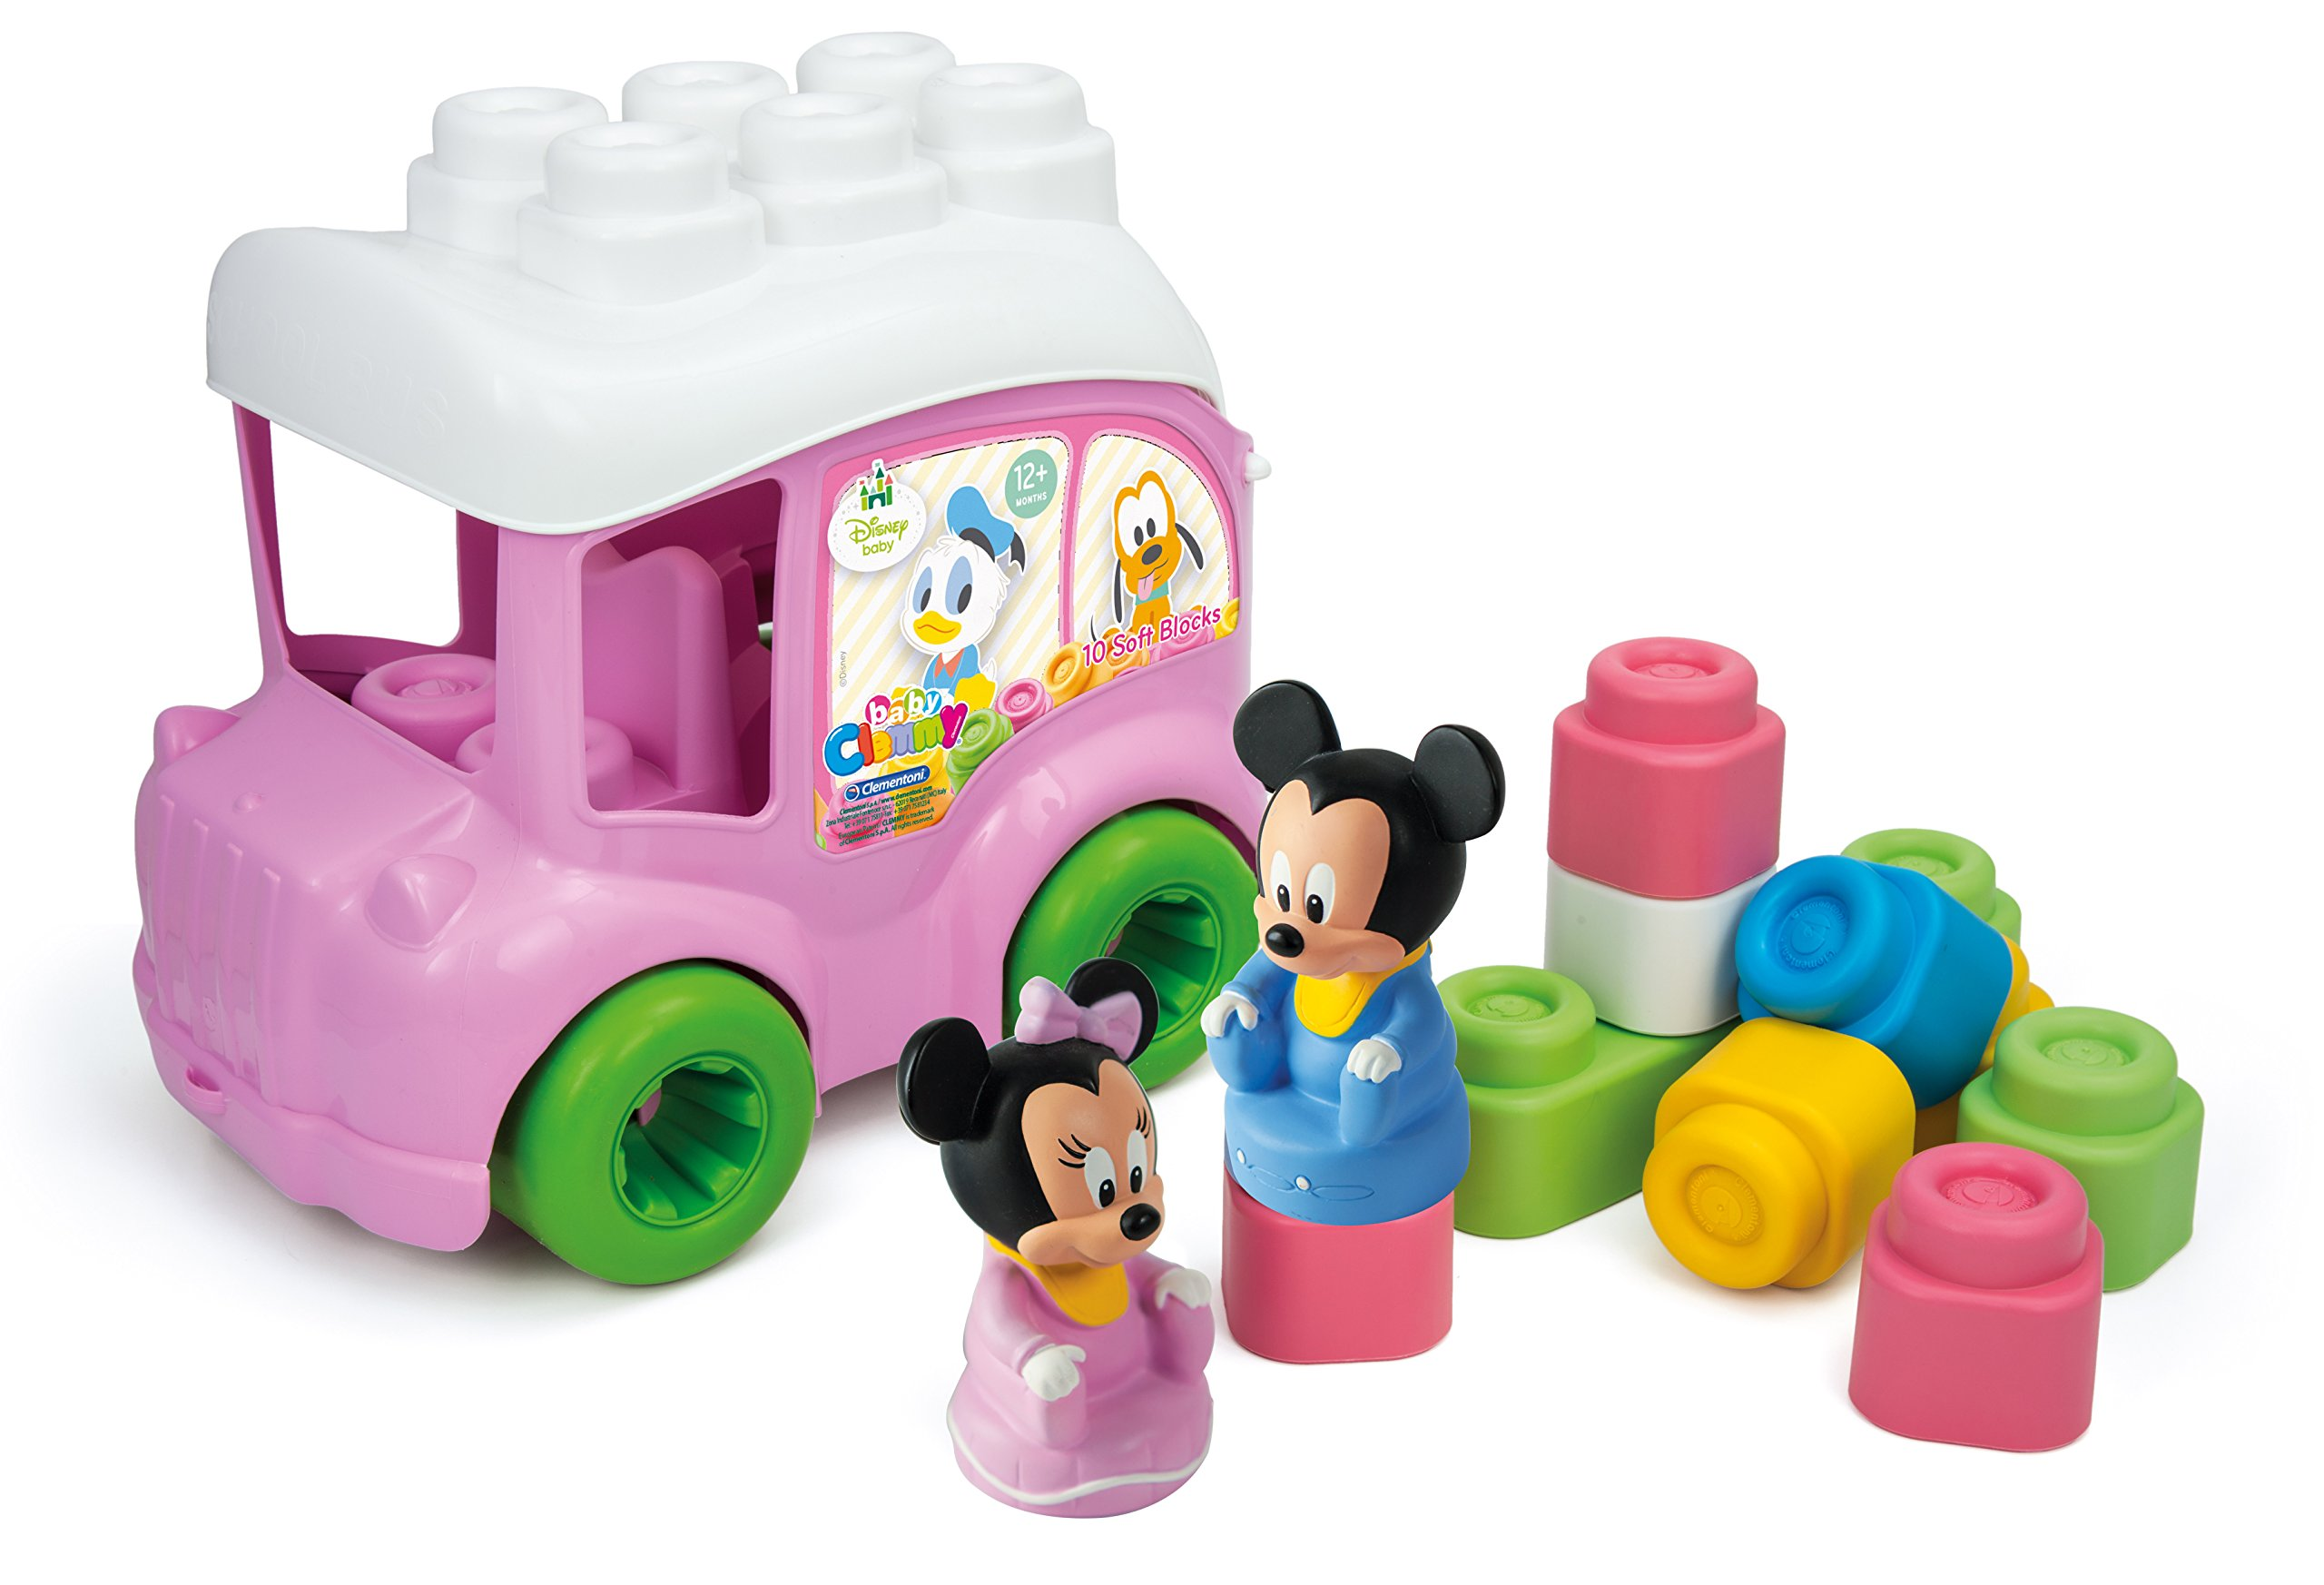 Clementoni - 14825 - Clemmy Bus Minnie product image